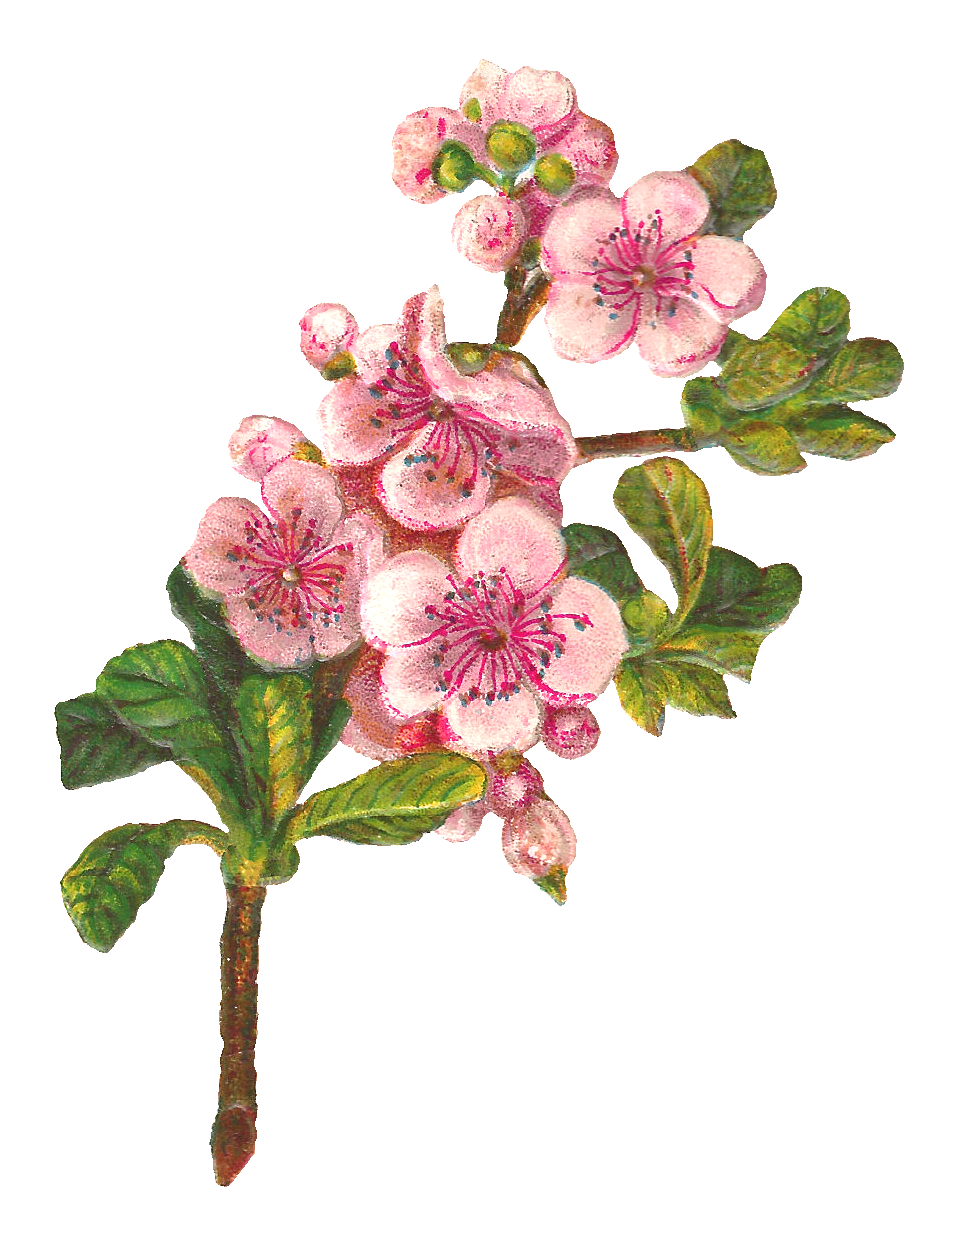 Clipart rose apple tree. Antique images botanical art